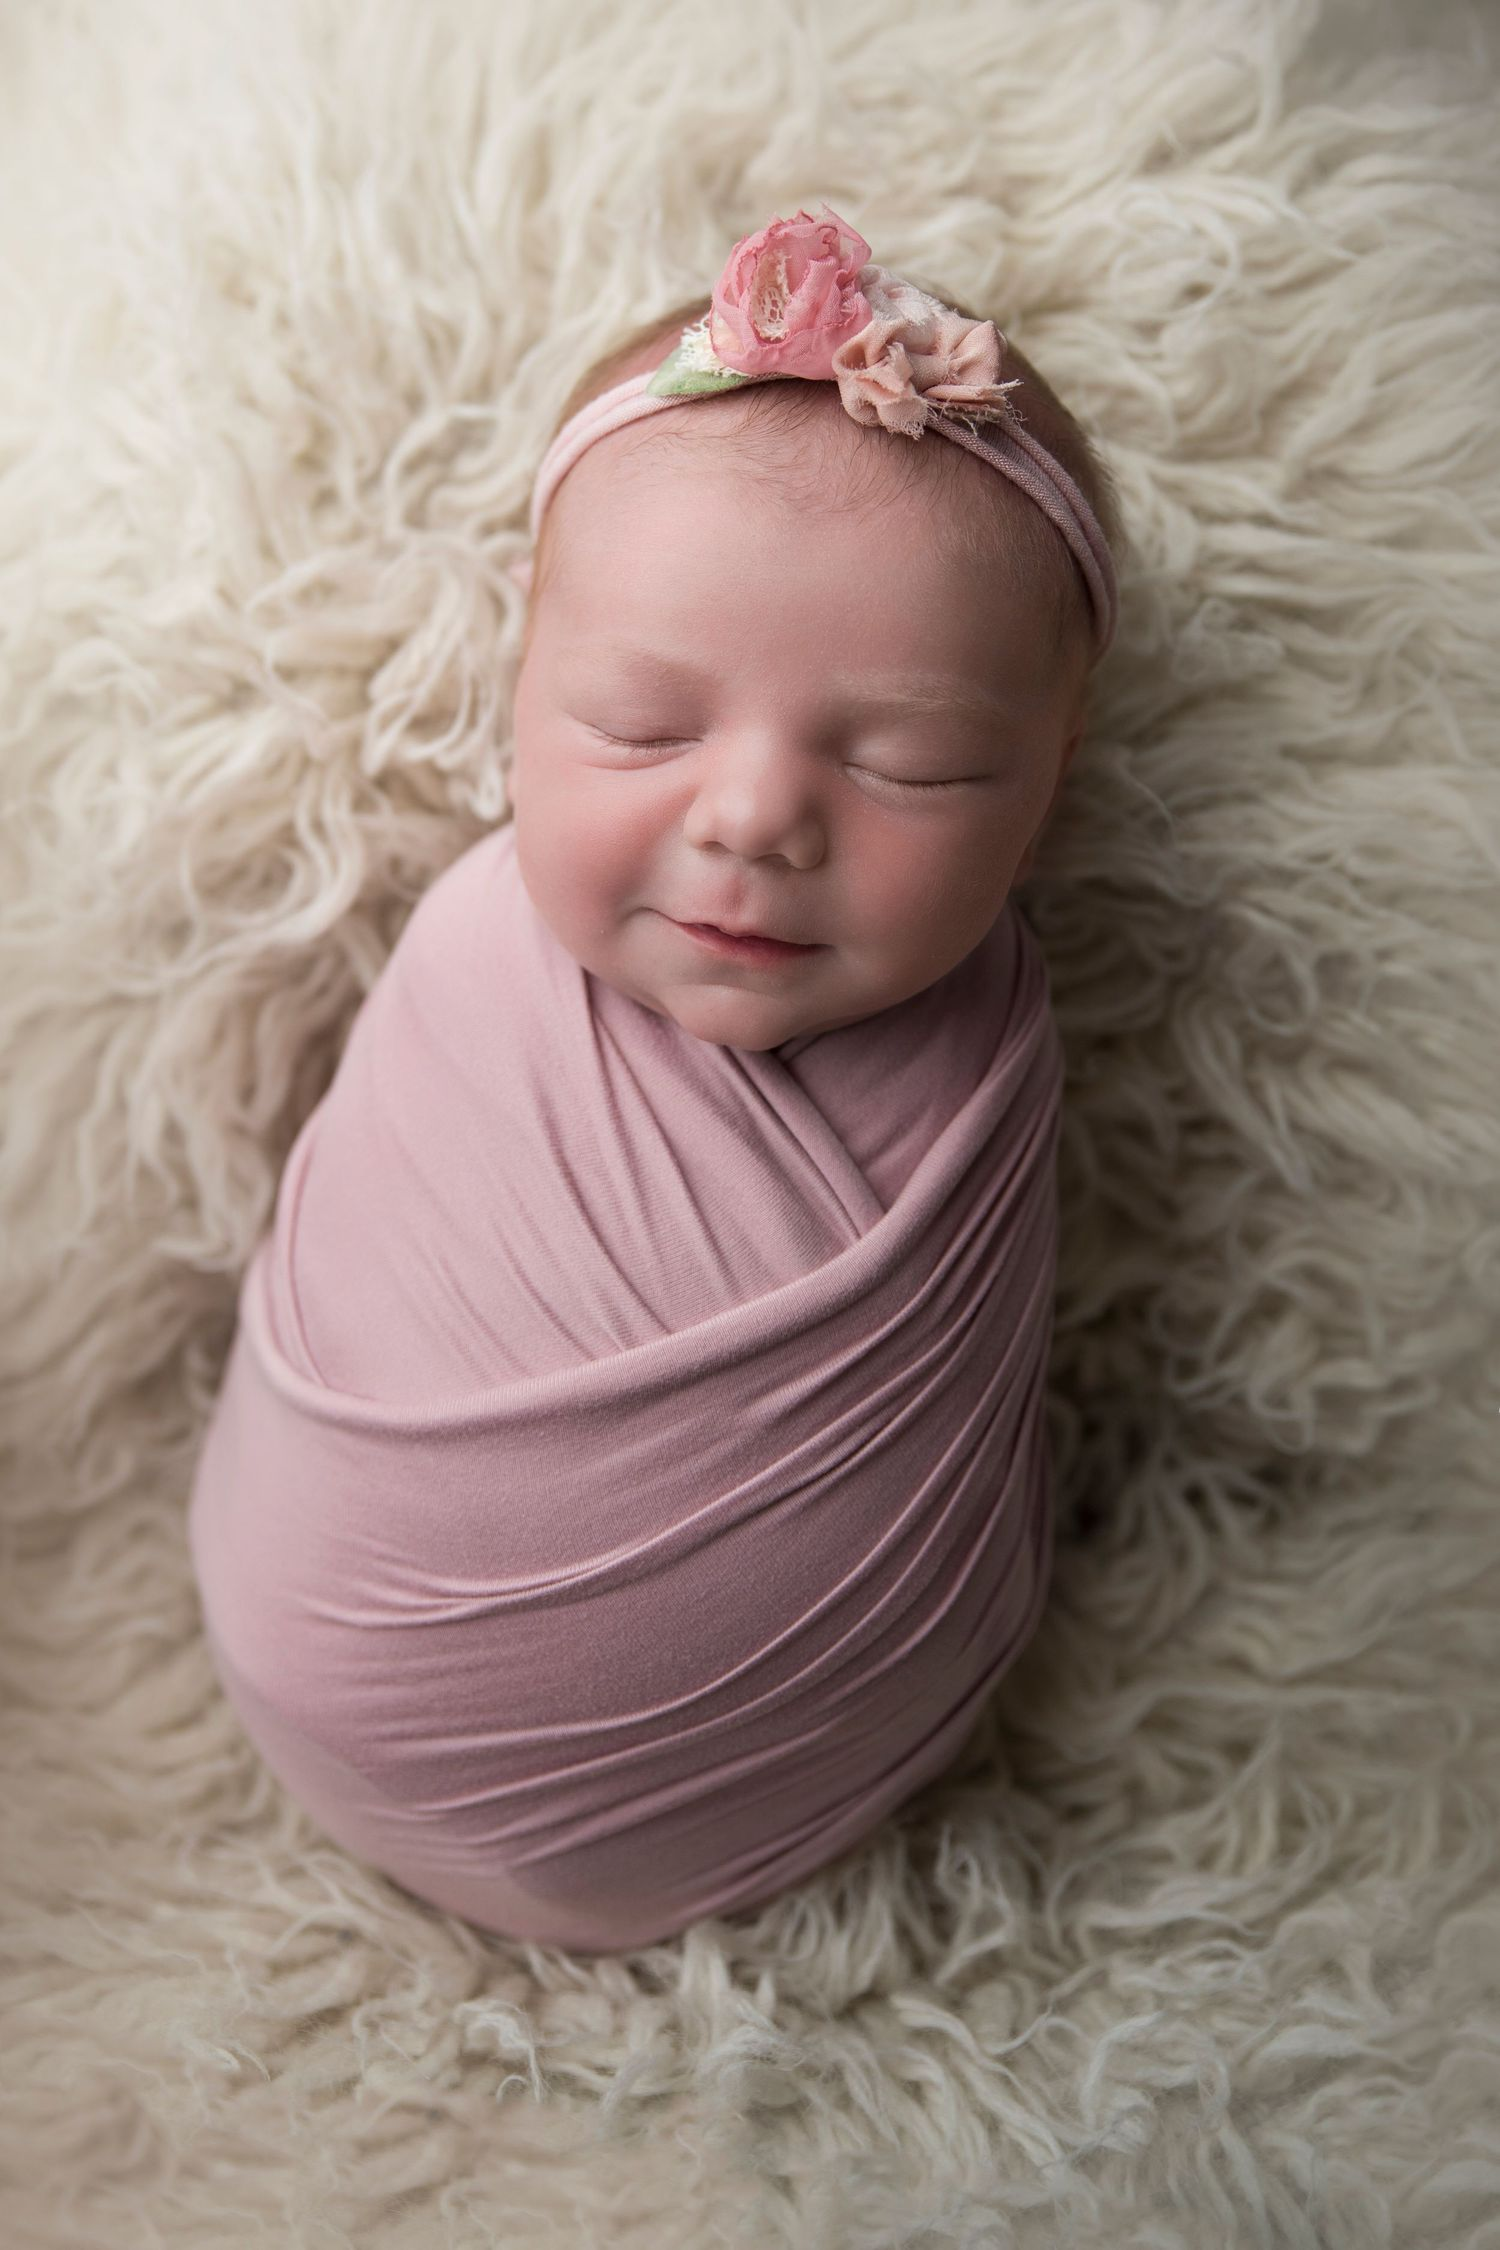 baby girl wrapped in pink on flokati